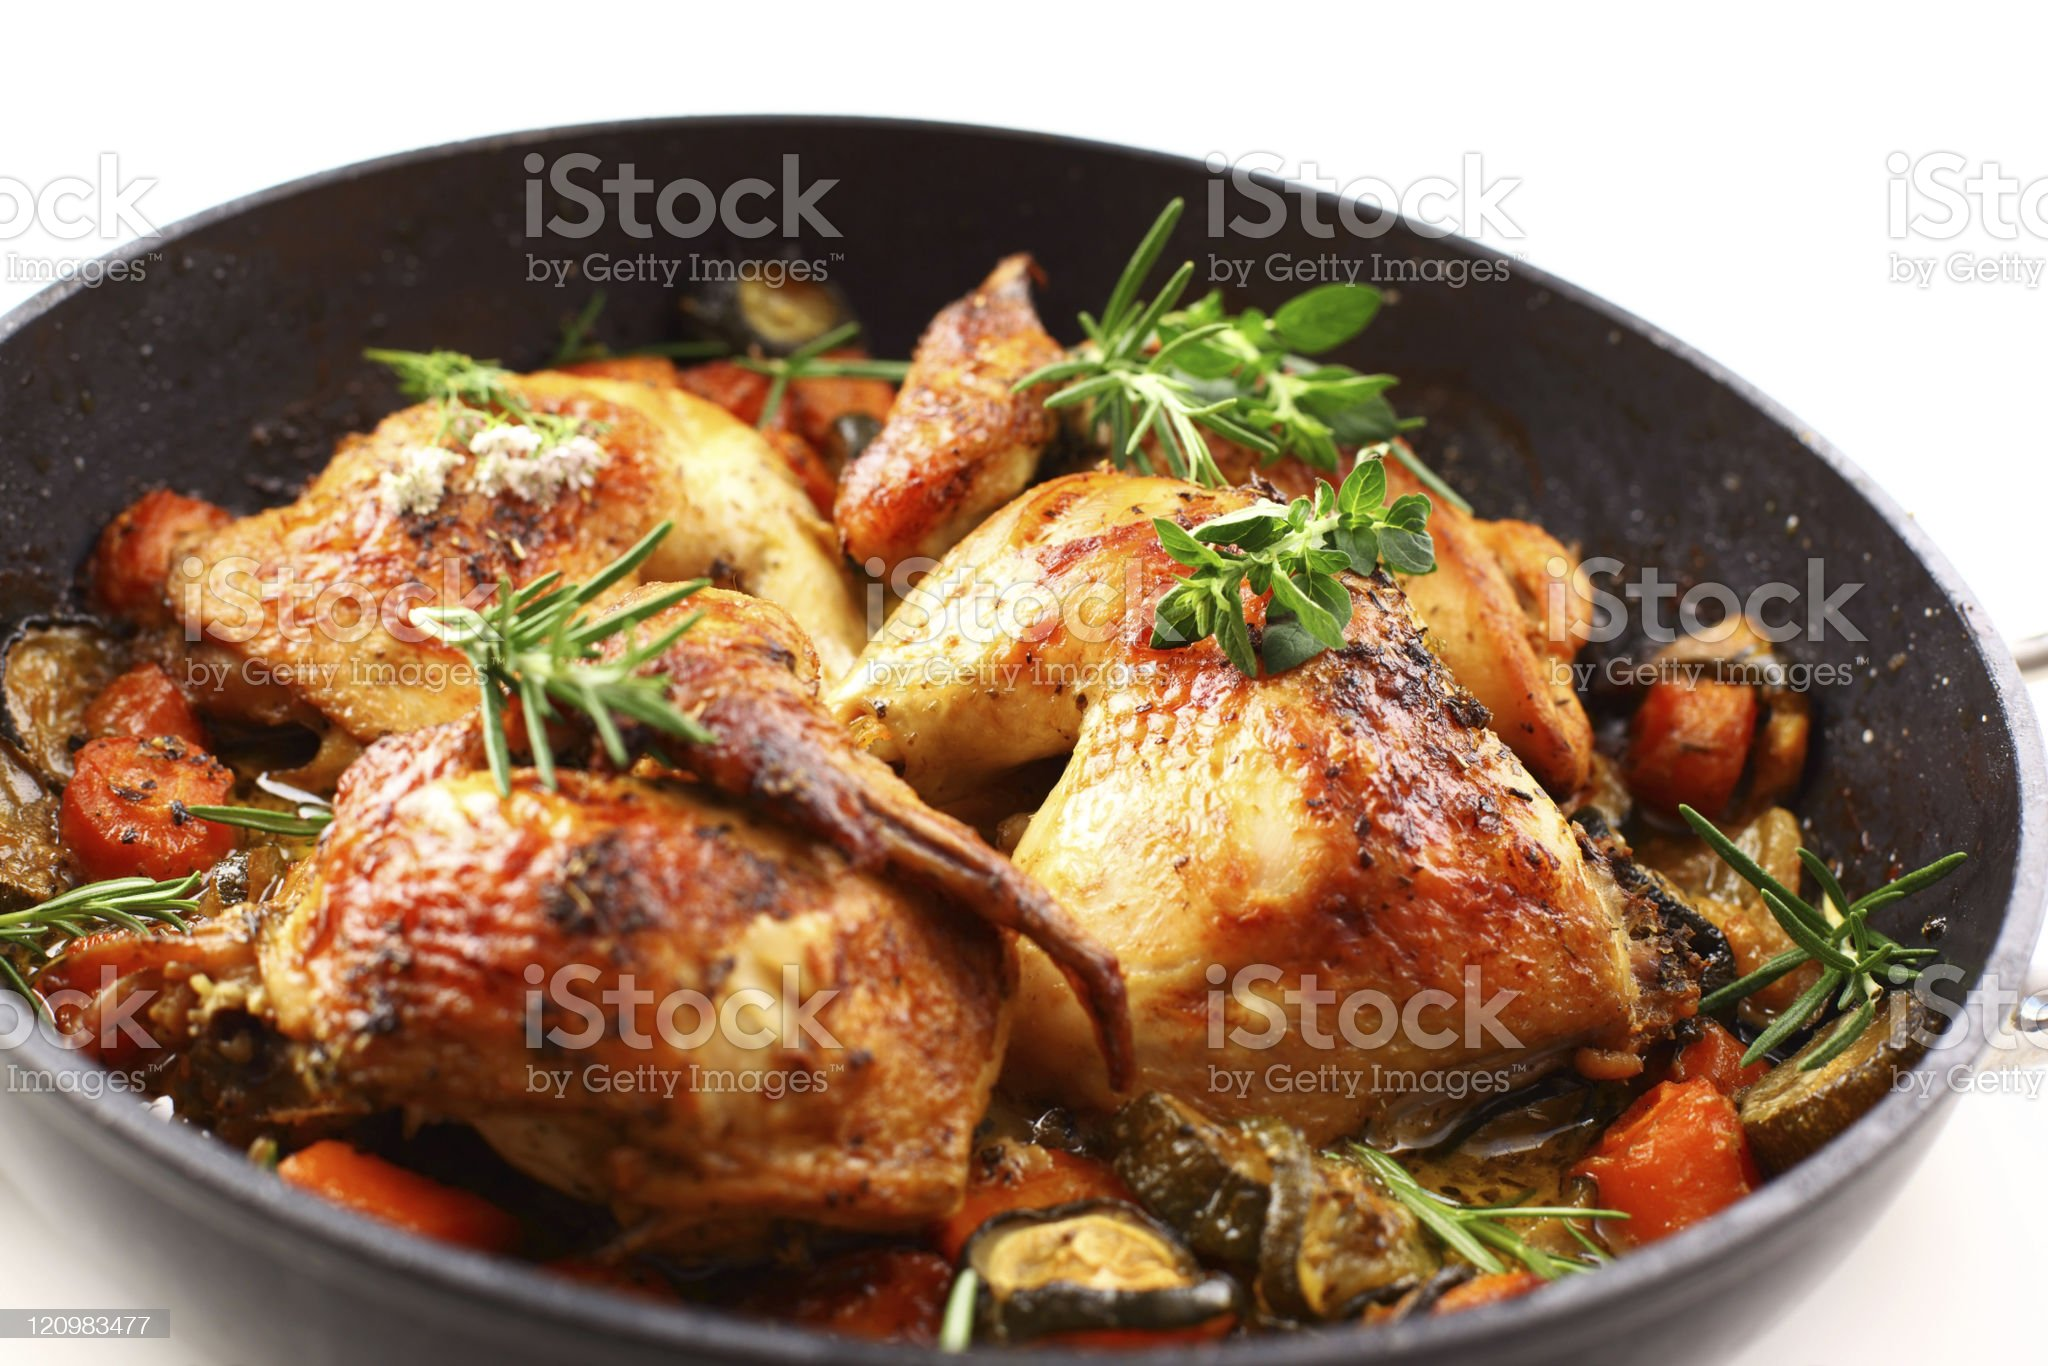 Roasted chicken with vegetable royalty-free stock photo